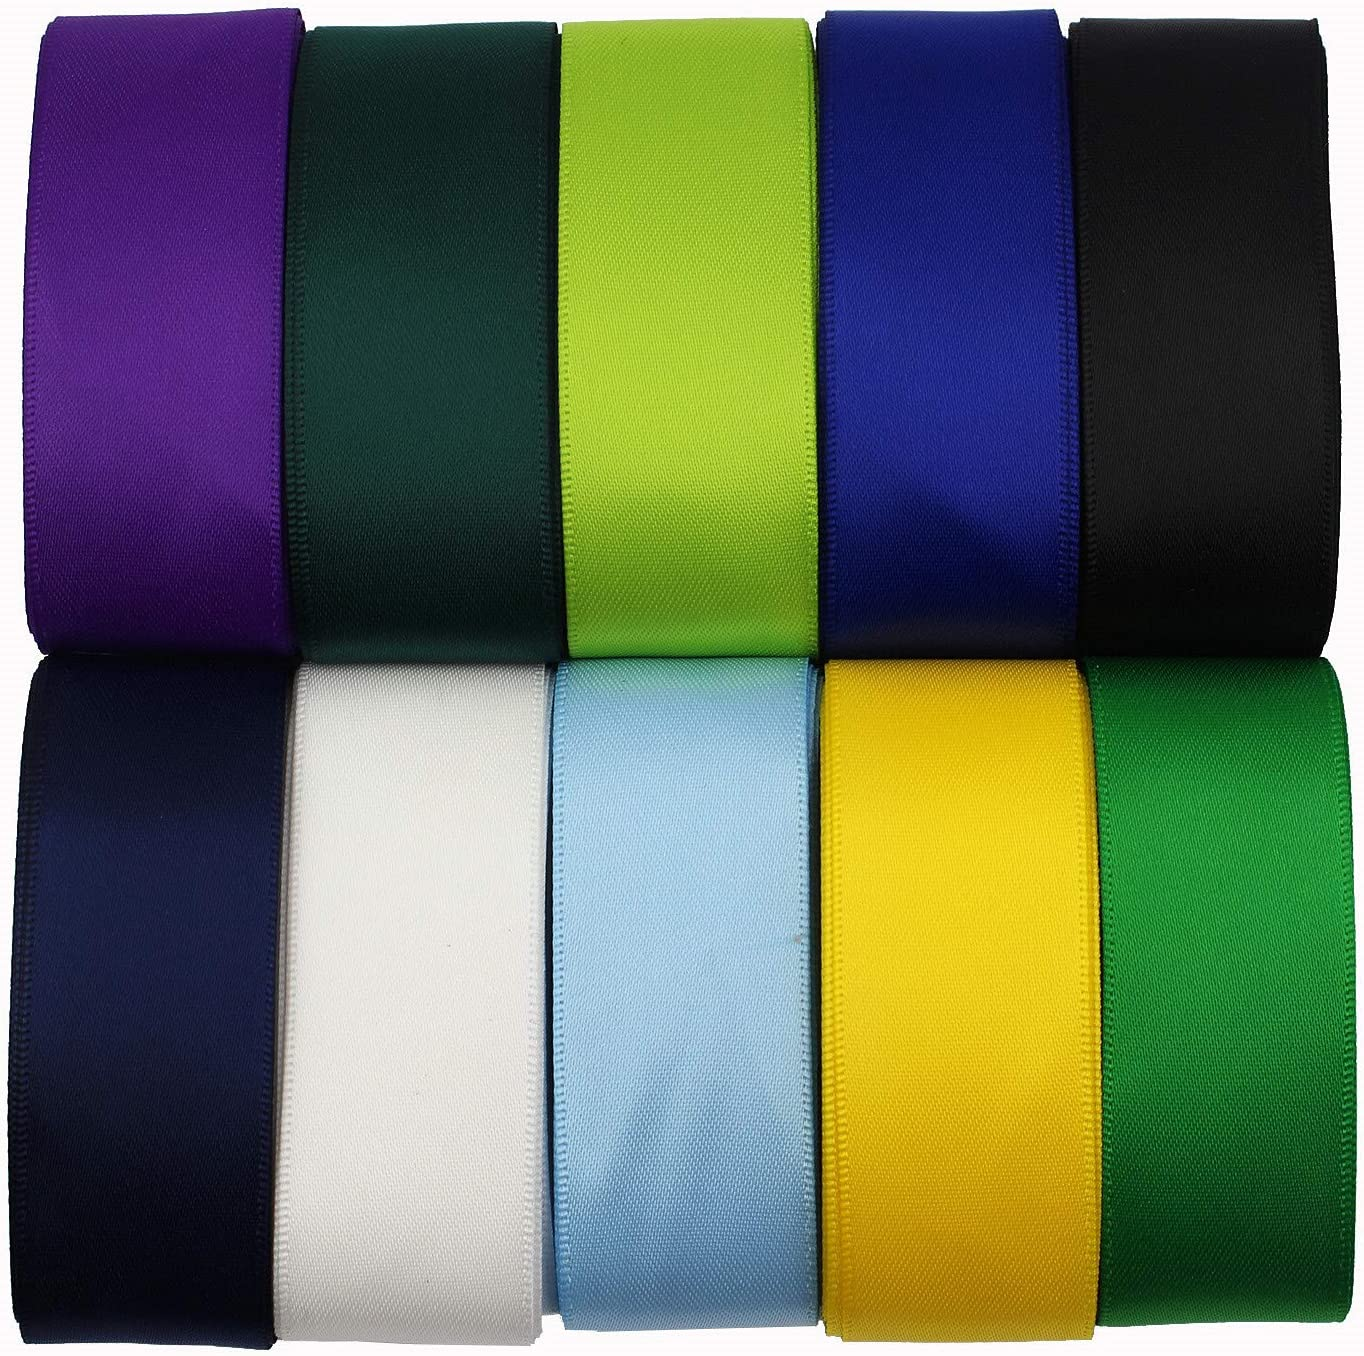 1 Inch Wide Solid Color Double Sided Polyester Satin Ribbon 20 Colors X 2 Yard Each Total 40 Yds Per Package : Arts, Crafts & Sewing